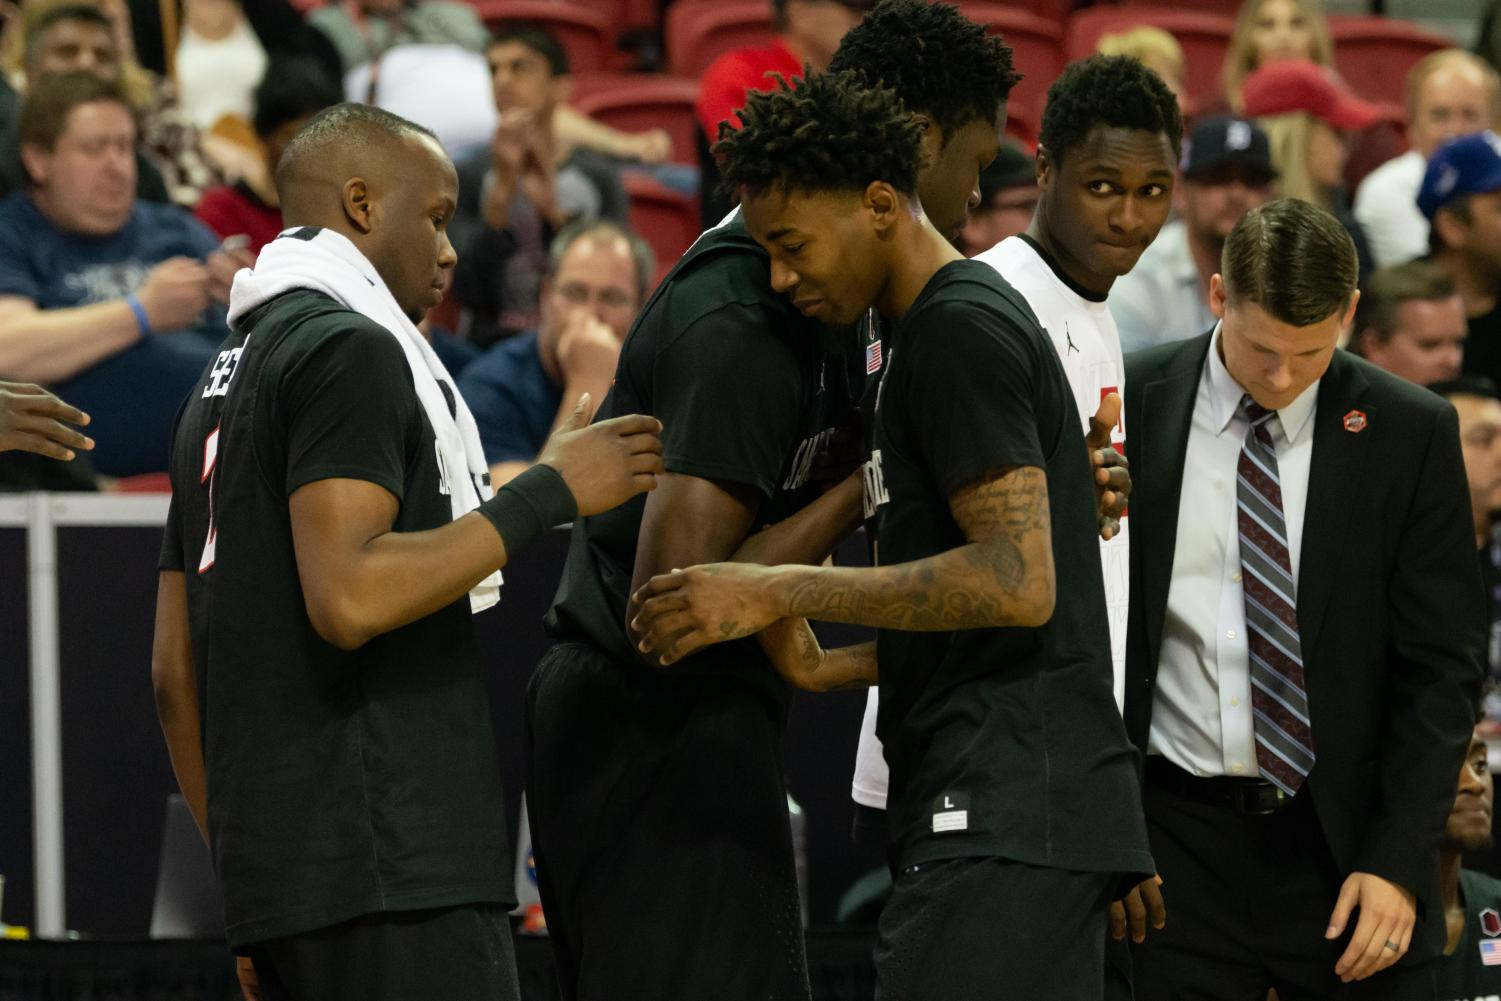 Senior guard Jeremy Hemsley embraces his teammates in the closing seconds of the Aztecs' 64-57 loss to Utah State in the Mountain West Conference tournament final on March 16 at the Thomas and Mack Center in Las Vegas.